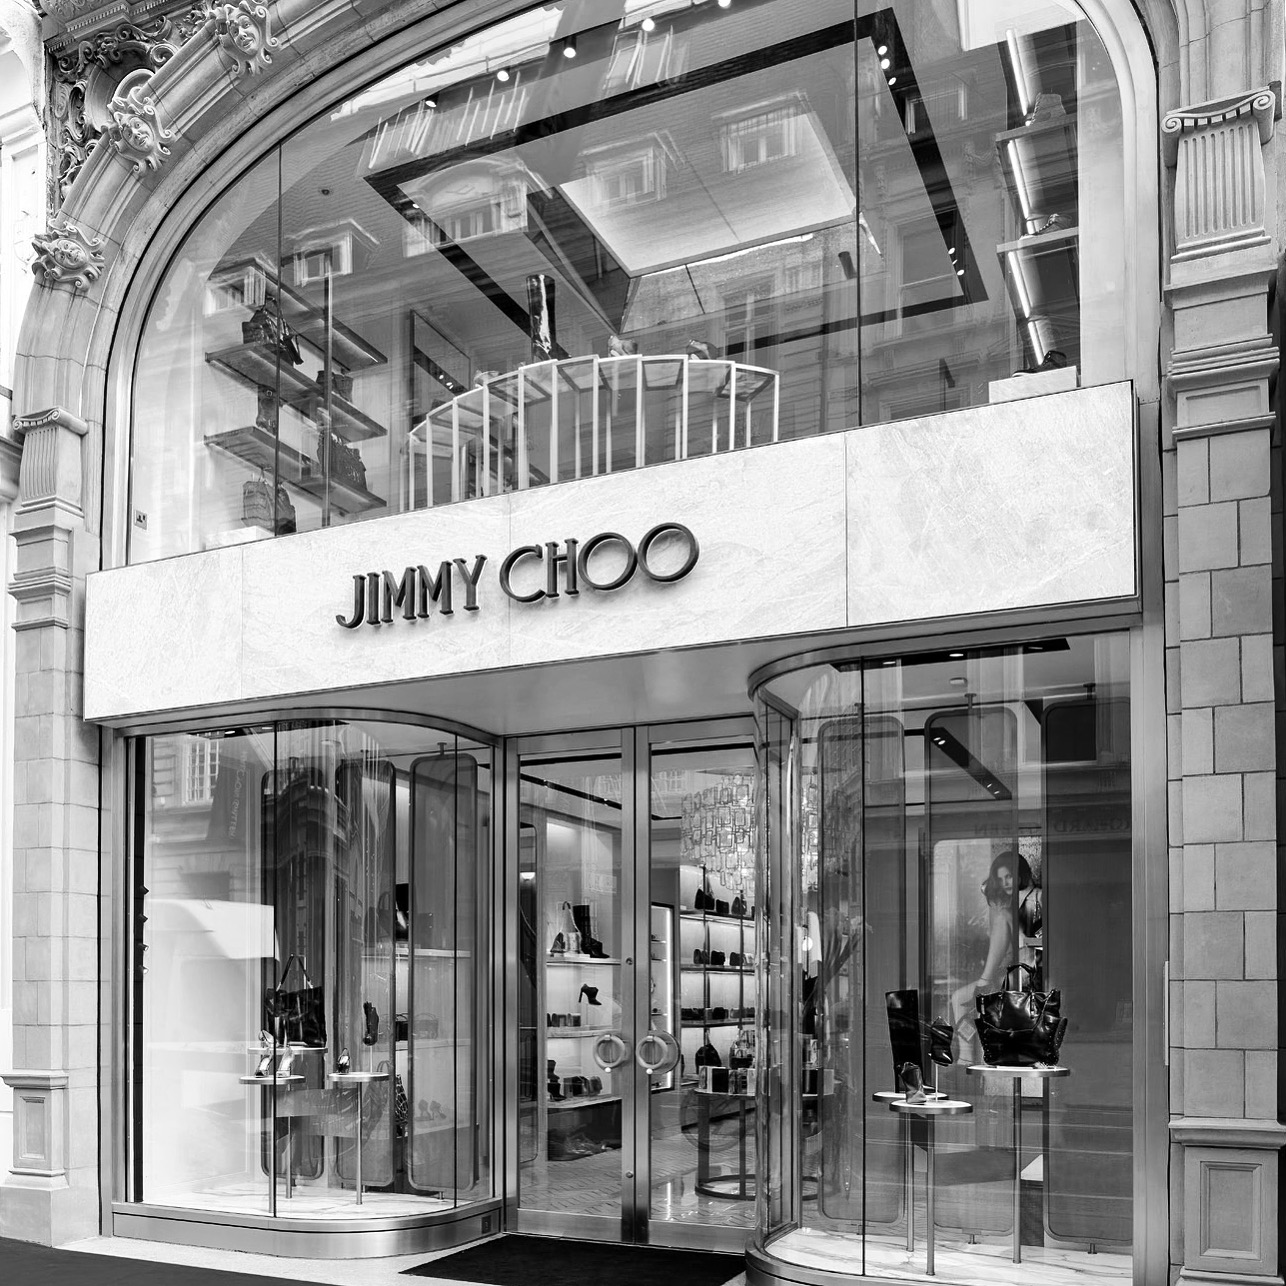 Jimmy Choo, New Bond Street, London, UK